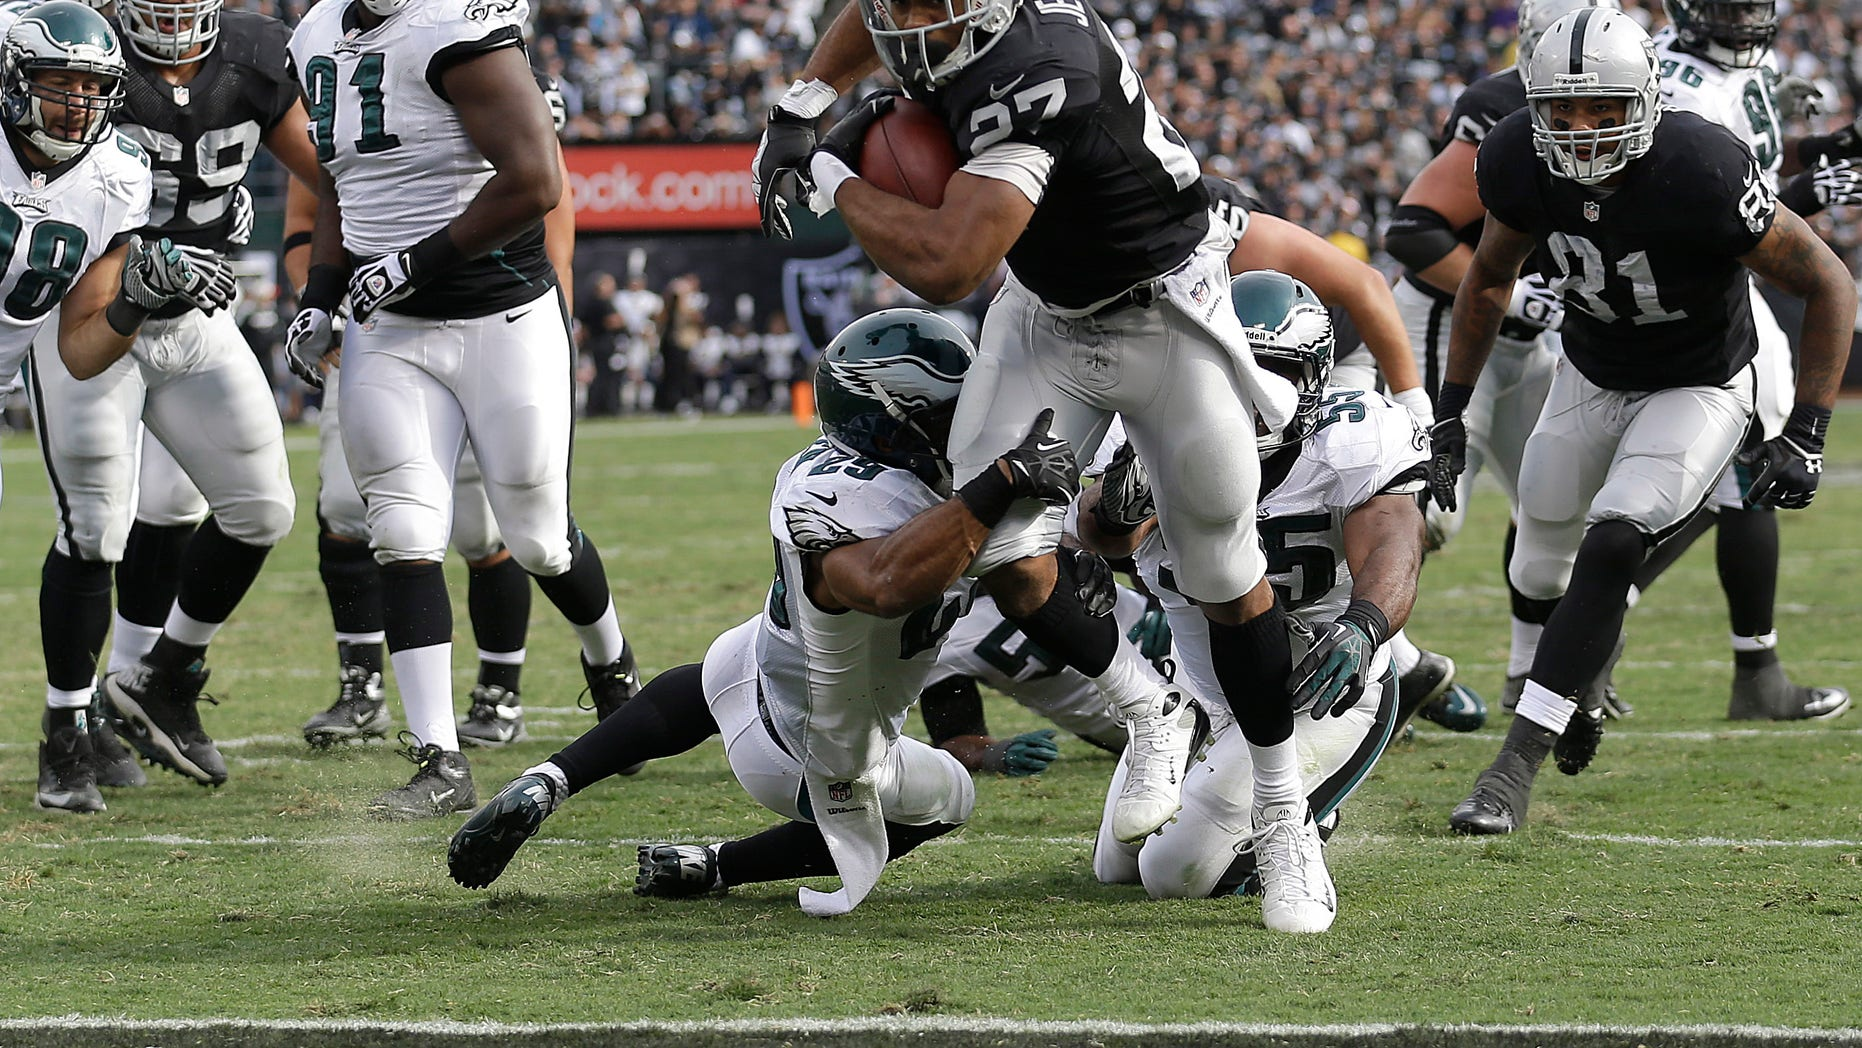 Oakland Raiders running back Rashad Jennings (27) runs for an 8-yard touchdown against the Philadelphia Eagles during the second quarter of an NFL football game in Oakland, Calif., Sunday, Nov. 3, 2013. (AP Photo/Marcio Jose Sanchez)